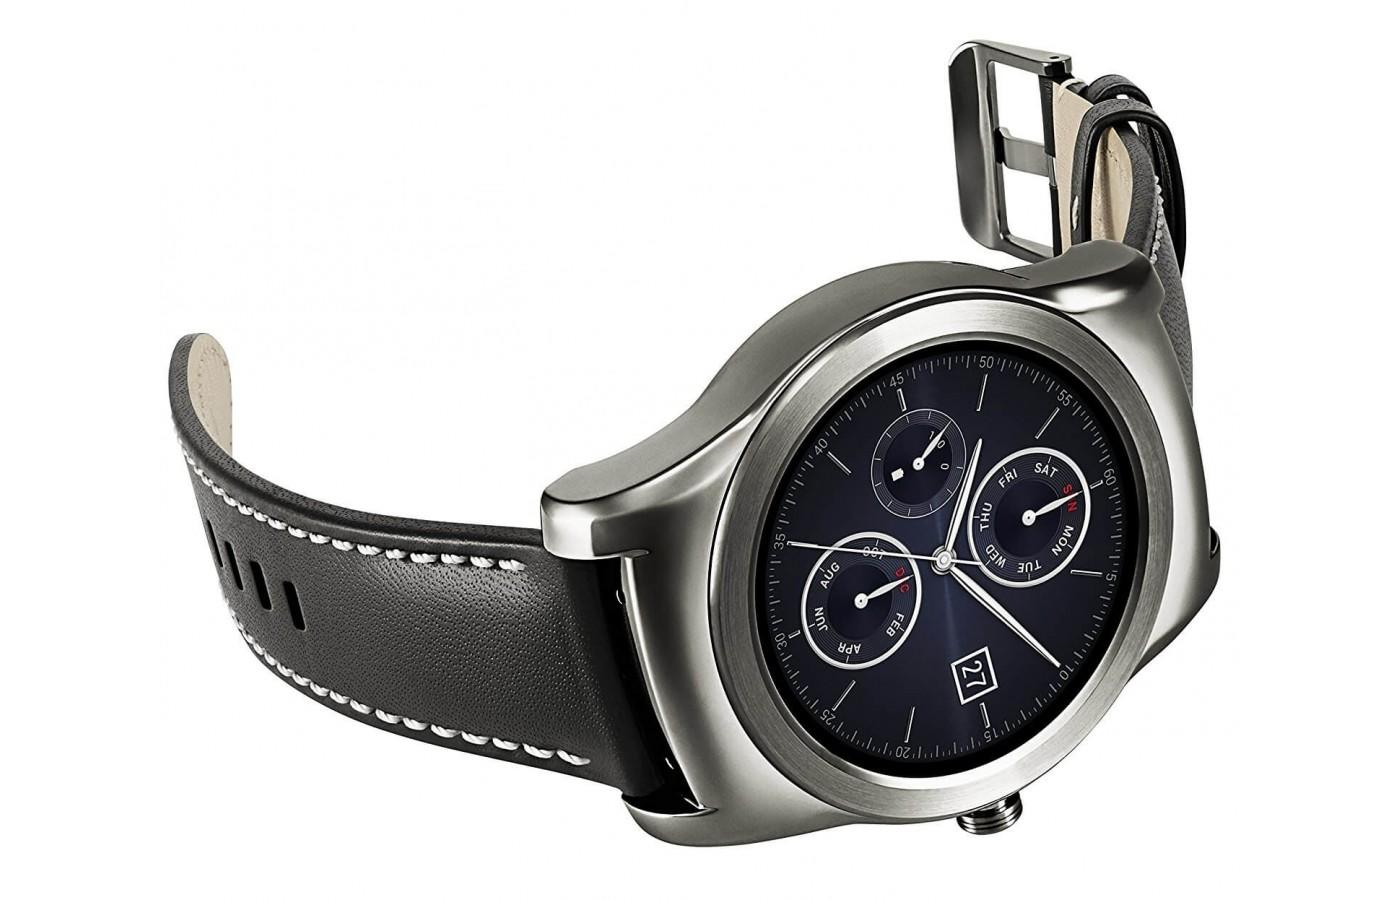 LG Watch Urbane is compatible with most devices